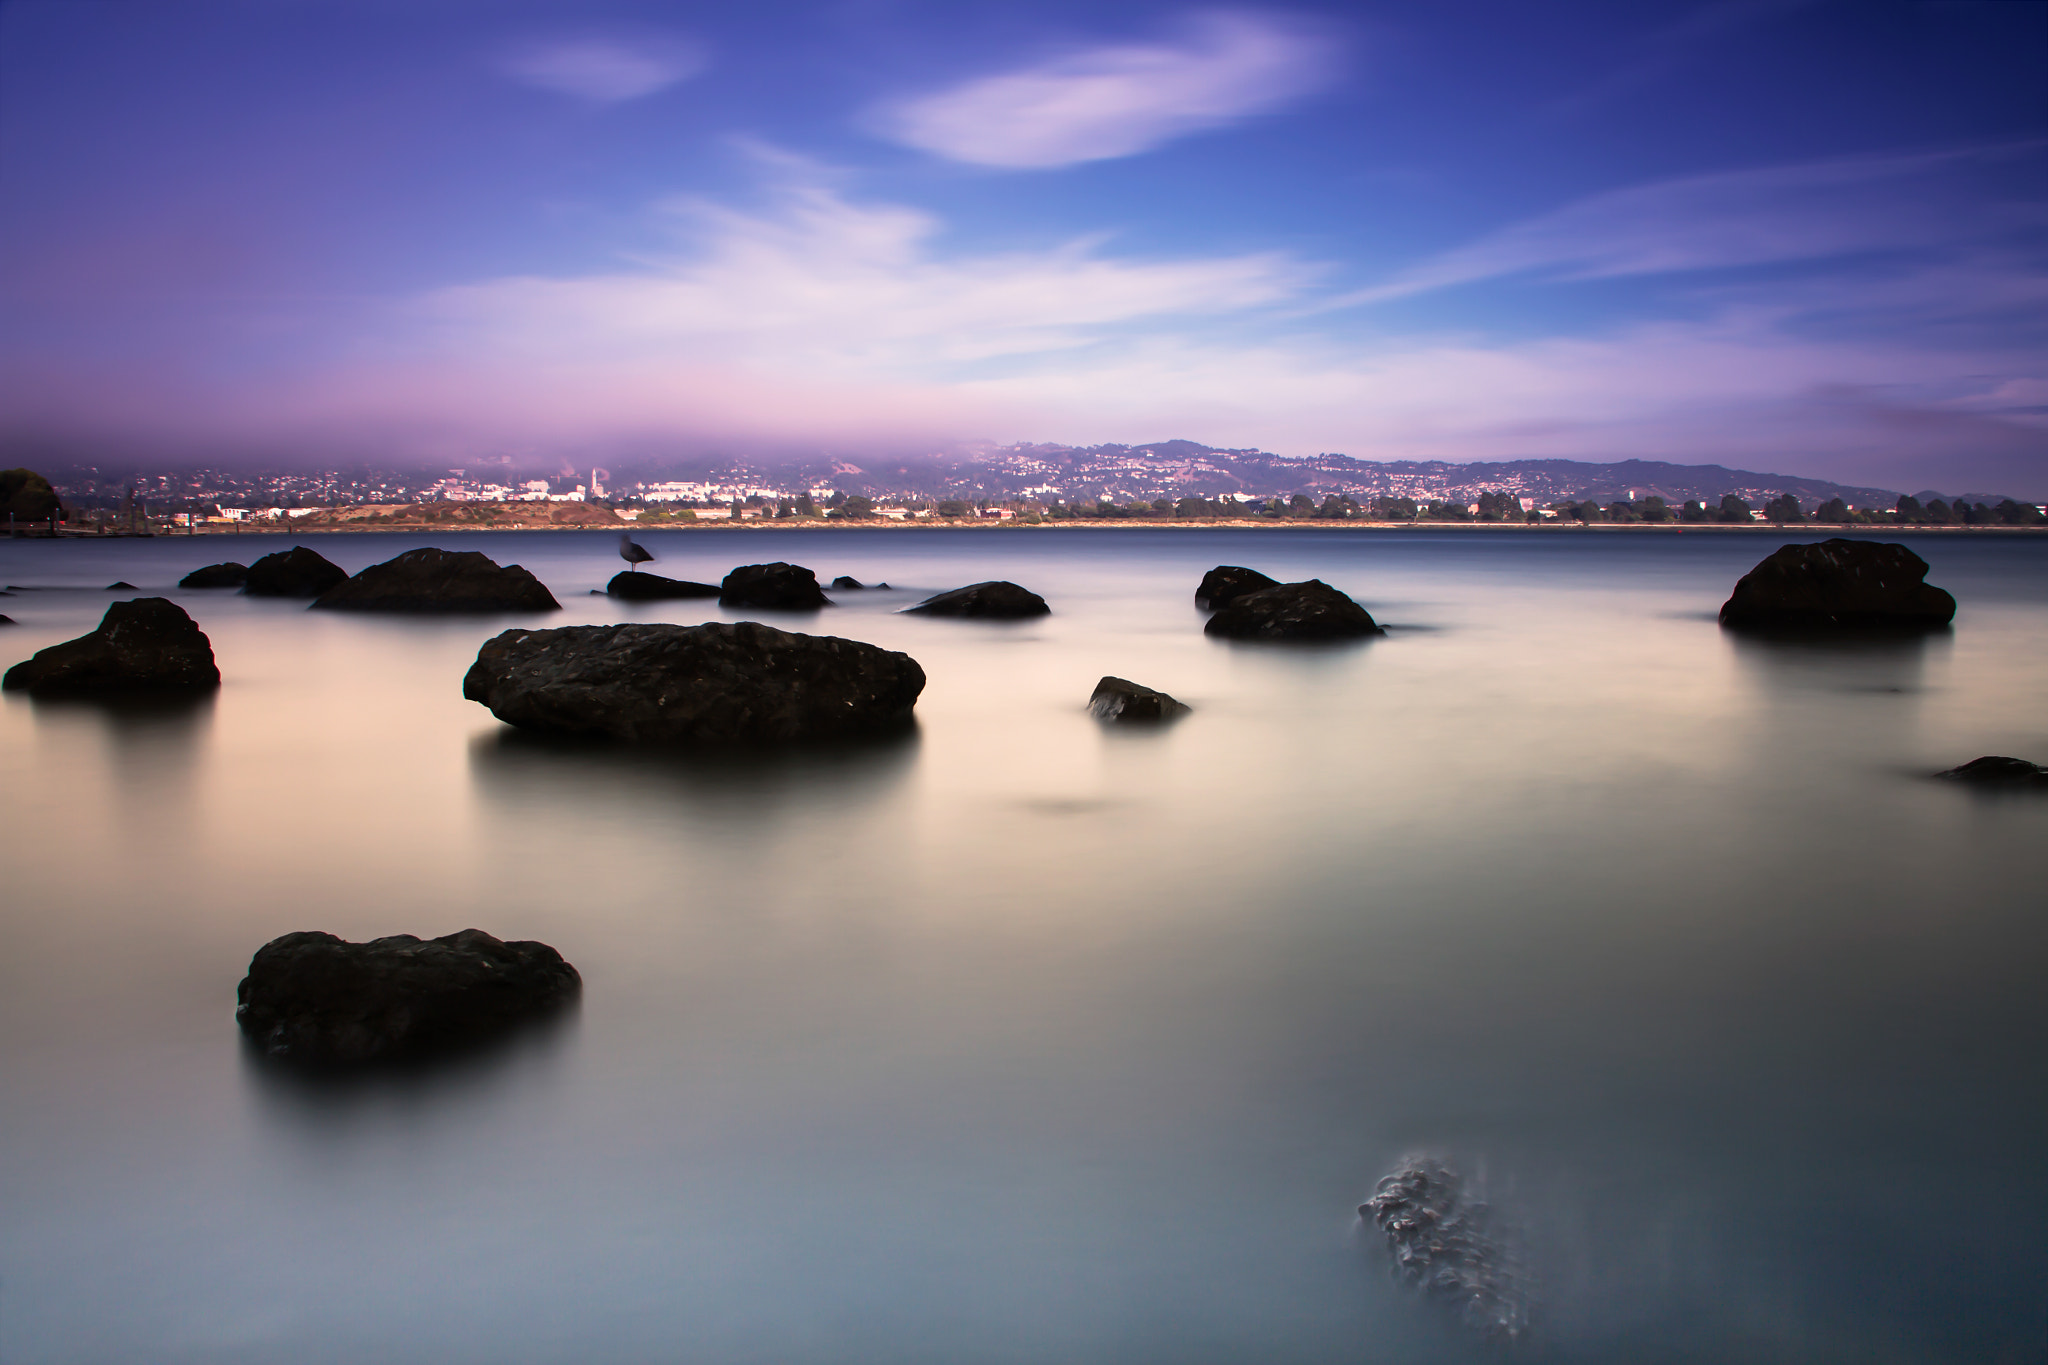 Photograph Blue on the Rocks by Alister C. on 500px